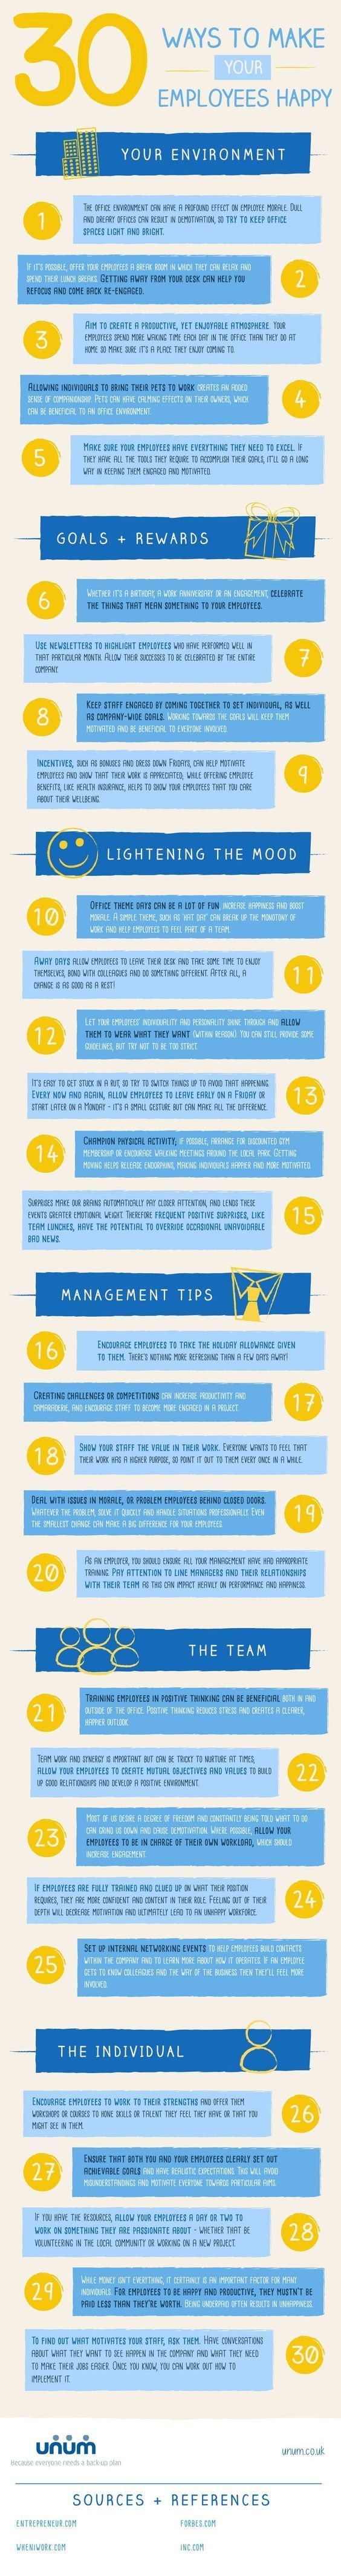 When I was in management, I was constantly trying to find ways to keep the employees I looked after happy.  It was a hard thing to do but I felt like I needed to pick up the morale because we all seemed miserable, and this post gave useful tips to be reminded of in a workplace. Good teamwork from what I can remember, makes the workplace funner to be at.  Goals seem achievable and business can get better.